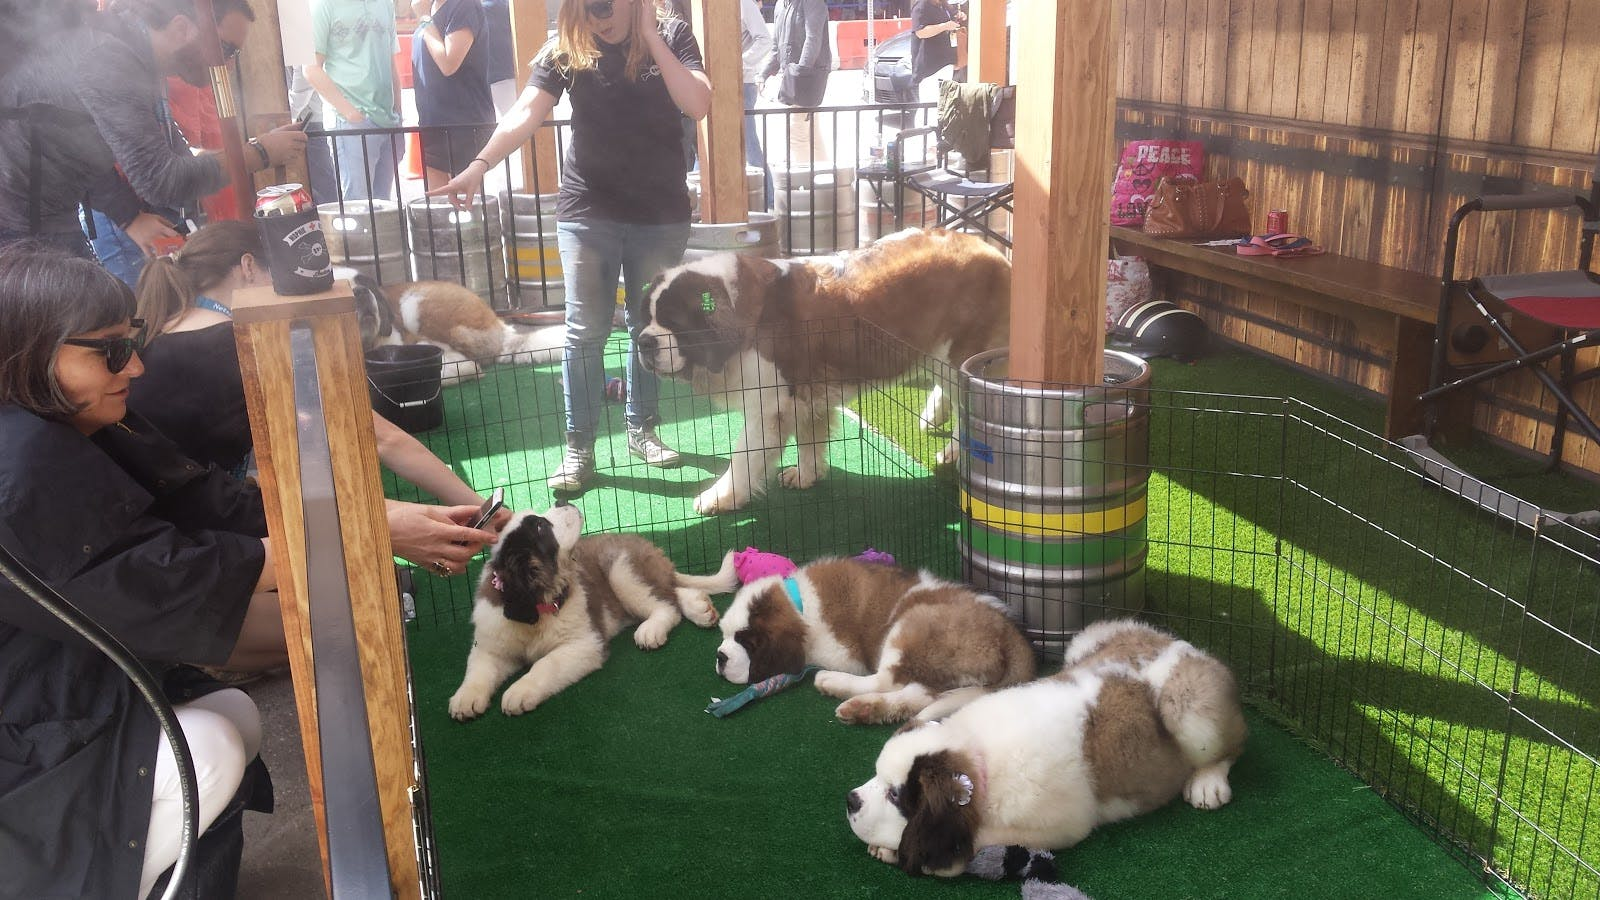 Puppy yard provided a cool place to relax away from the crowds.